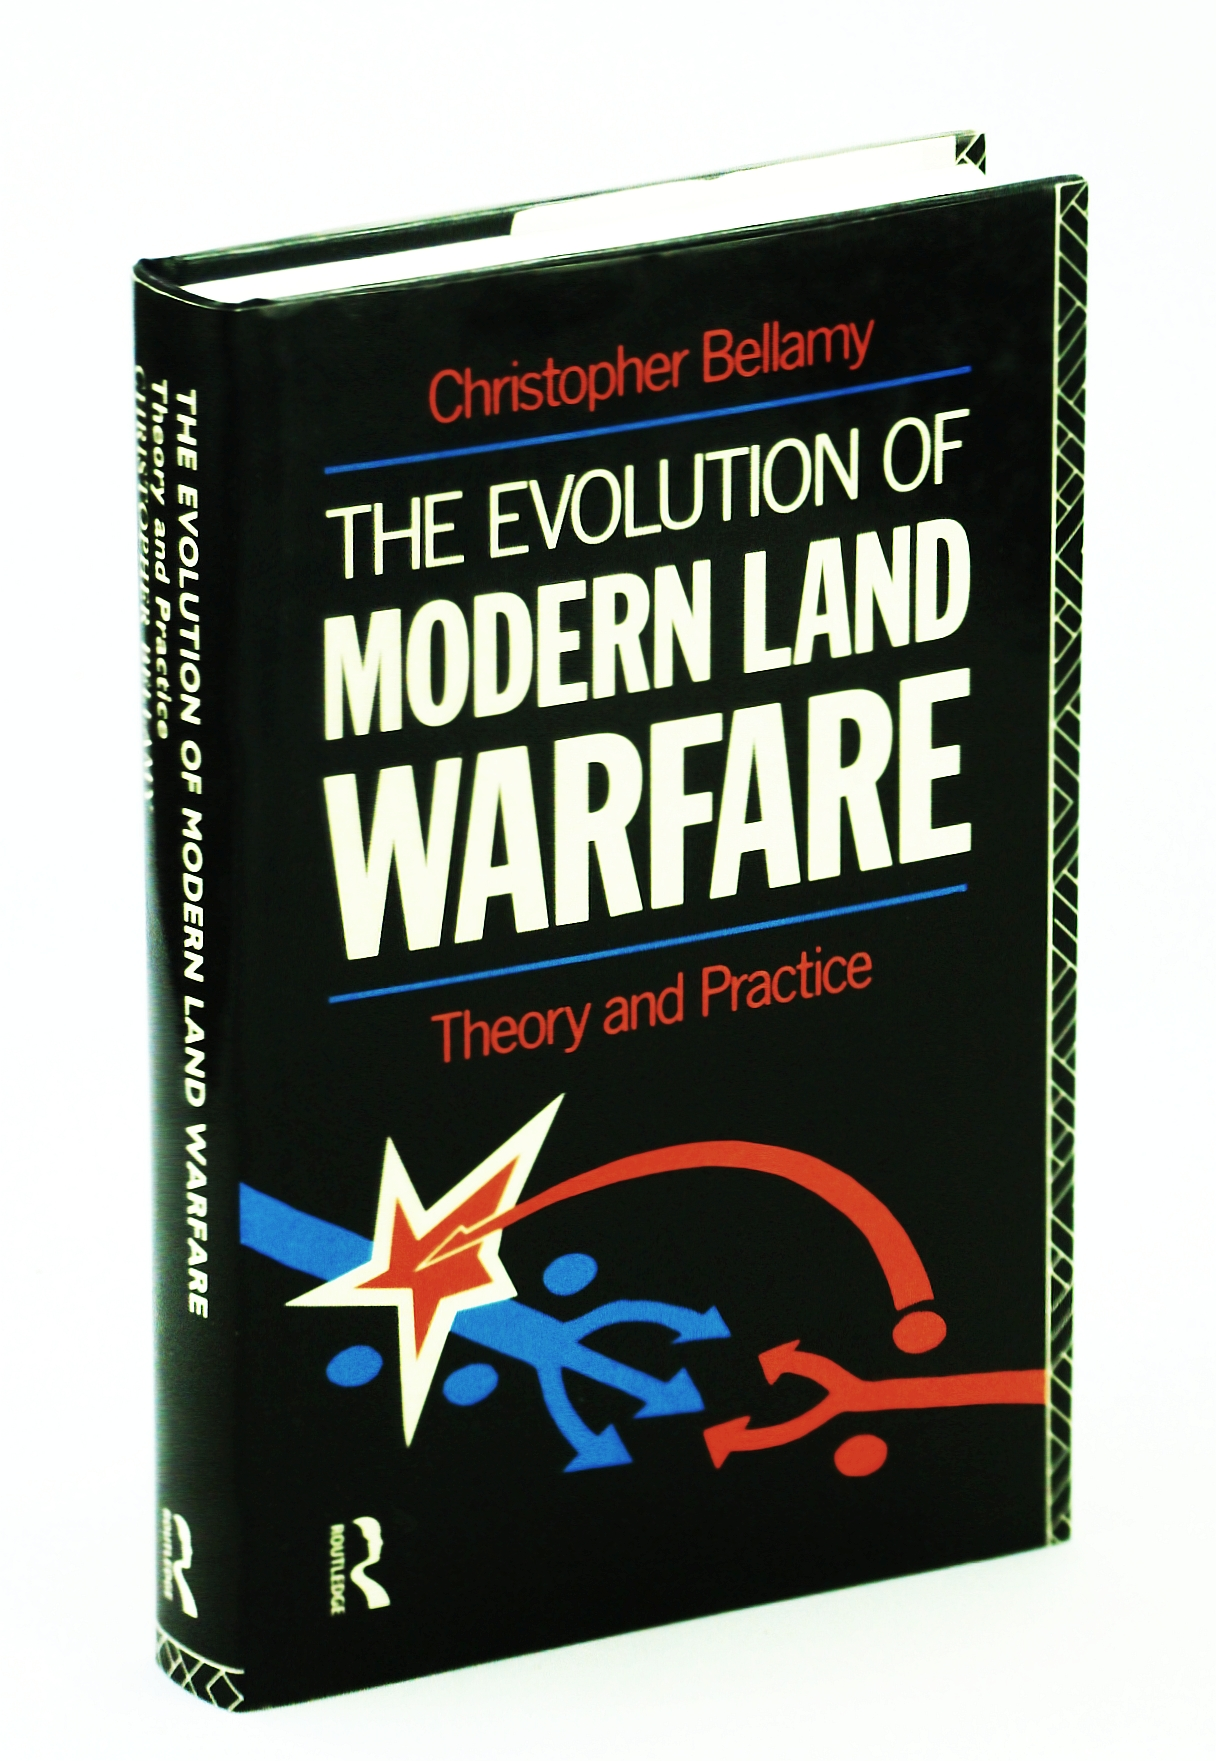 Image for The Evolution of Modern Land Warfare: Theory and Practice